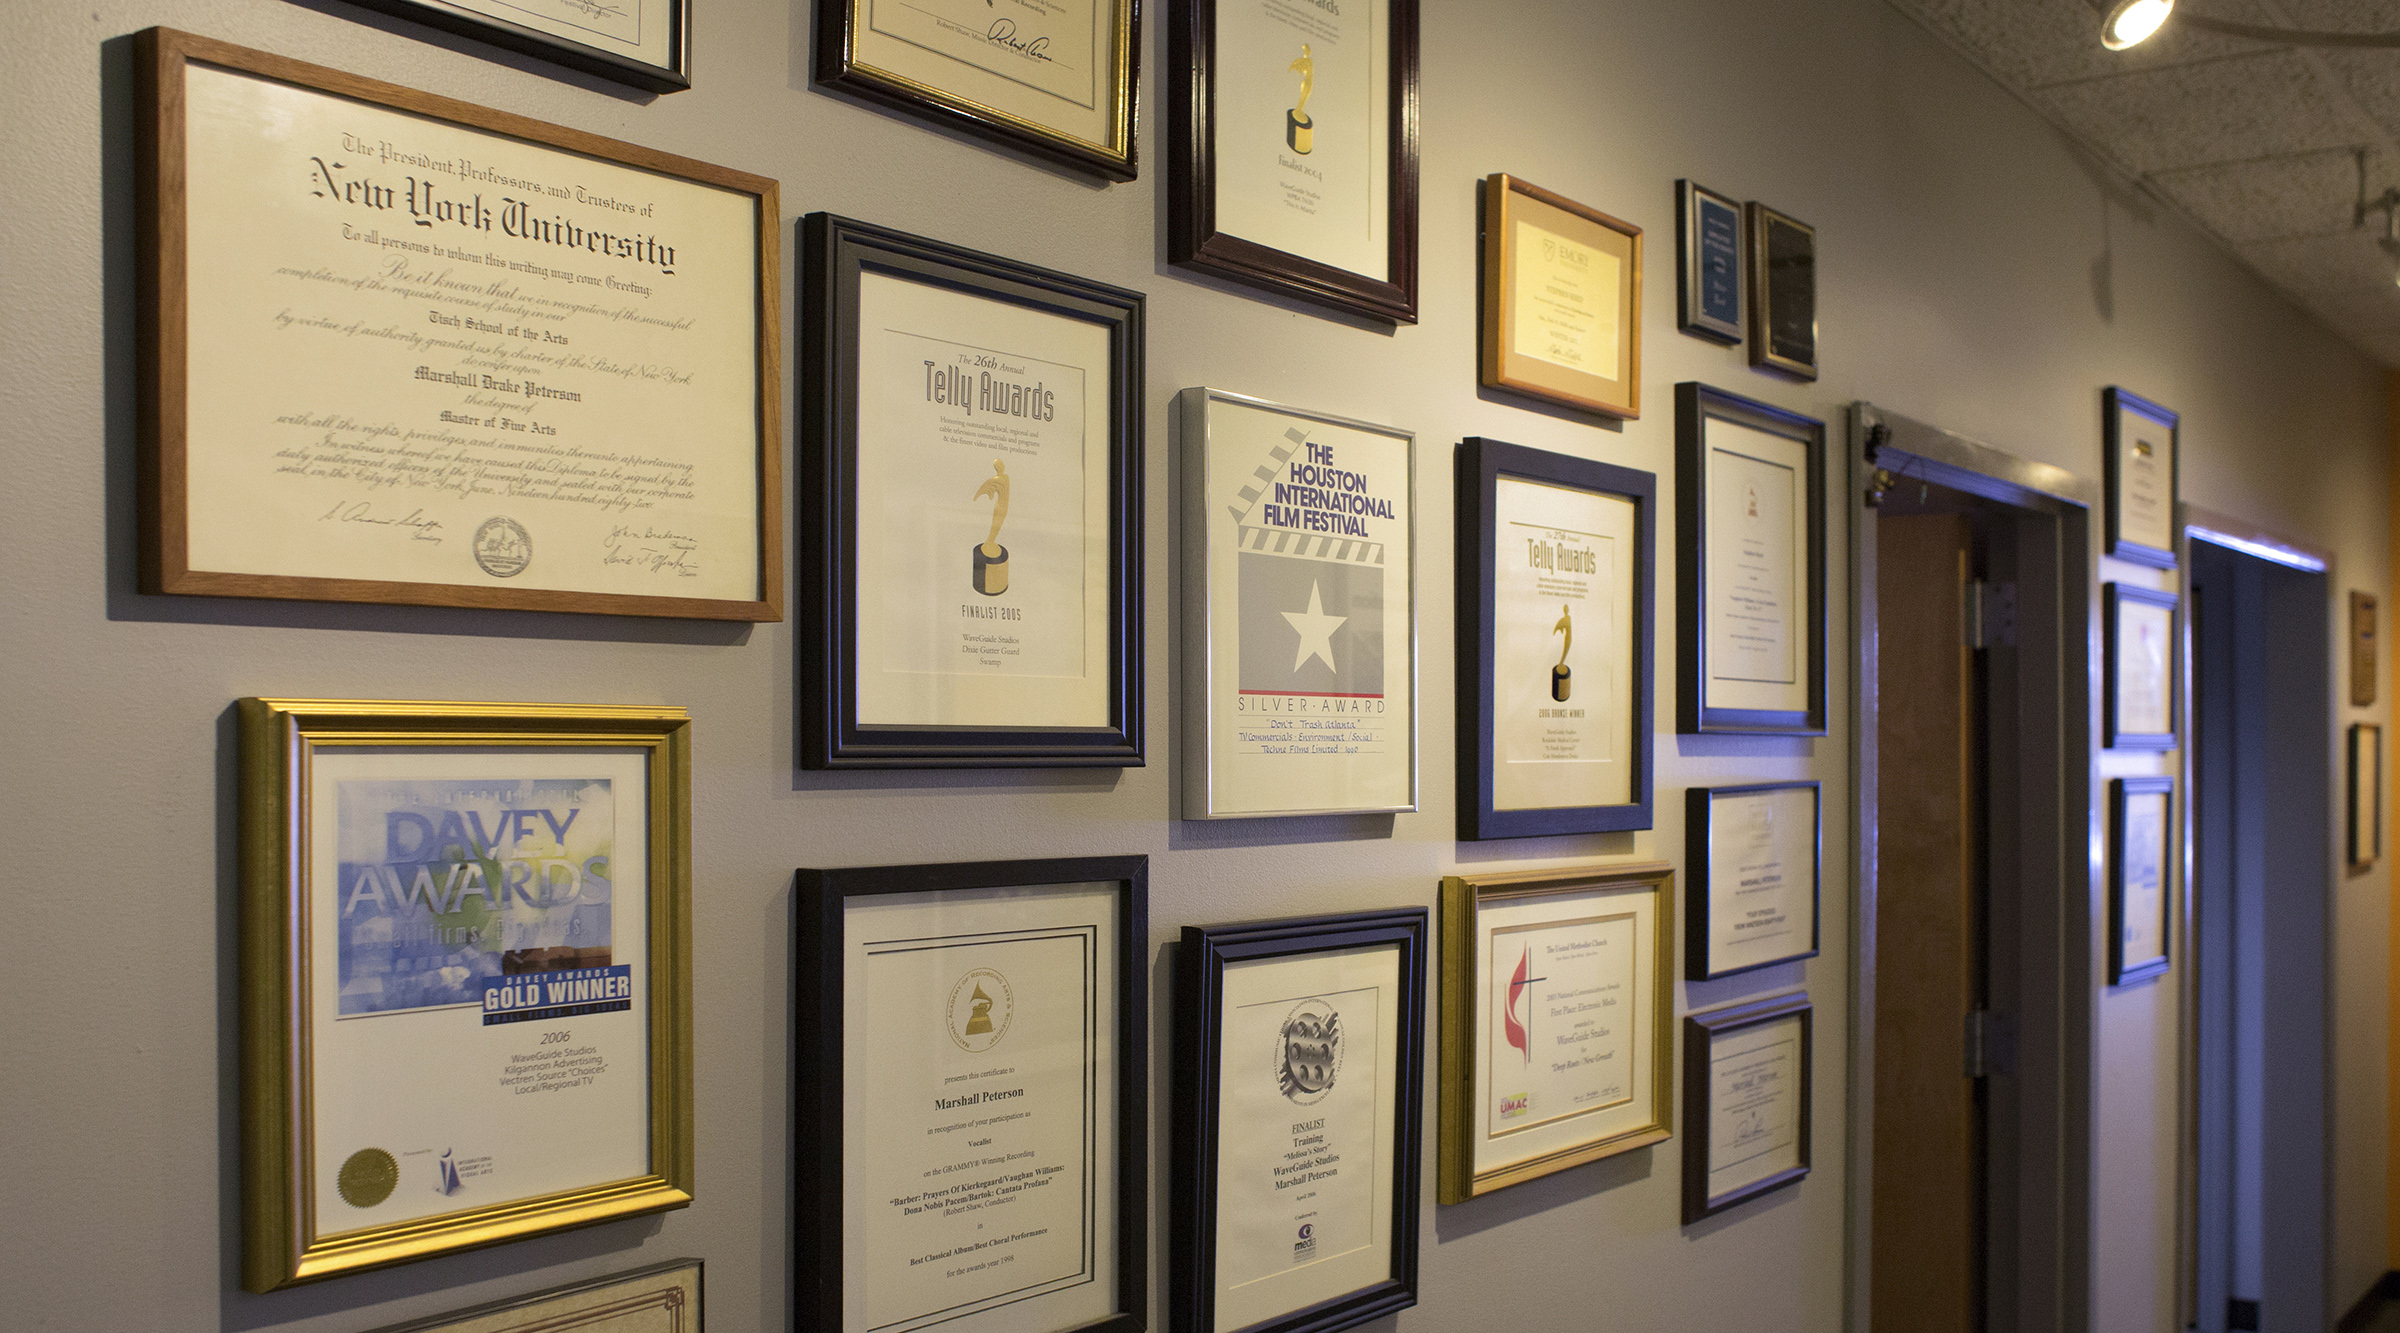 """Our walls are festooned with awards won by WaveGuide Studios and our team, along with some really cool movie posters (check out our first edition """"Barry Lyndon"""", for instance). There's a wide range of awards – some of Steve's Grammys from his years with the ASOC, and also his """"Employee of the Month"""" at Wolf Camera back in the '80s. You get ten points if you find Marshall's Valedictorian trophy from Columbine High School."""